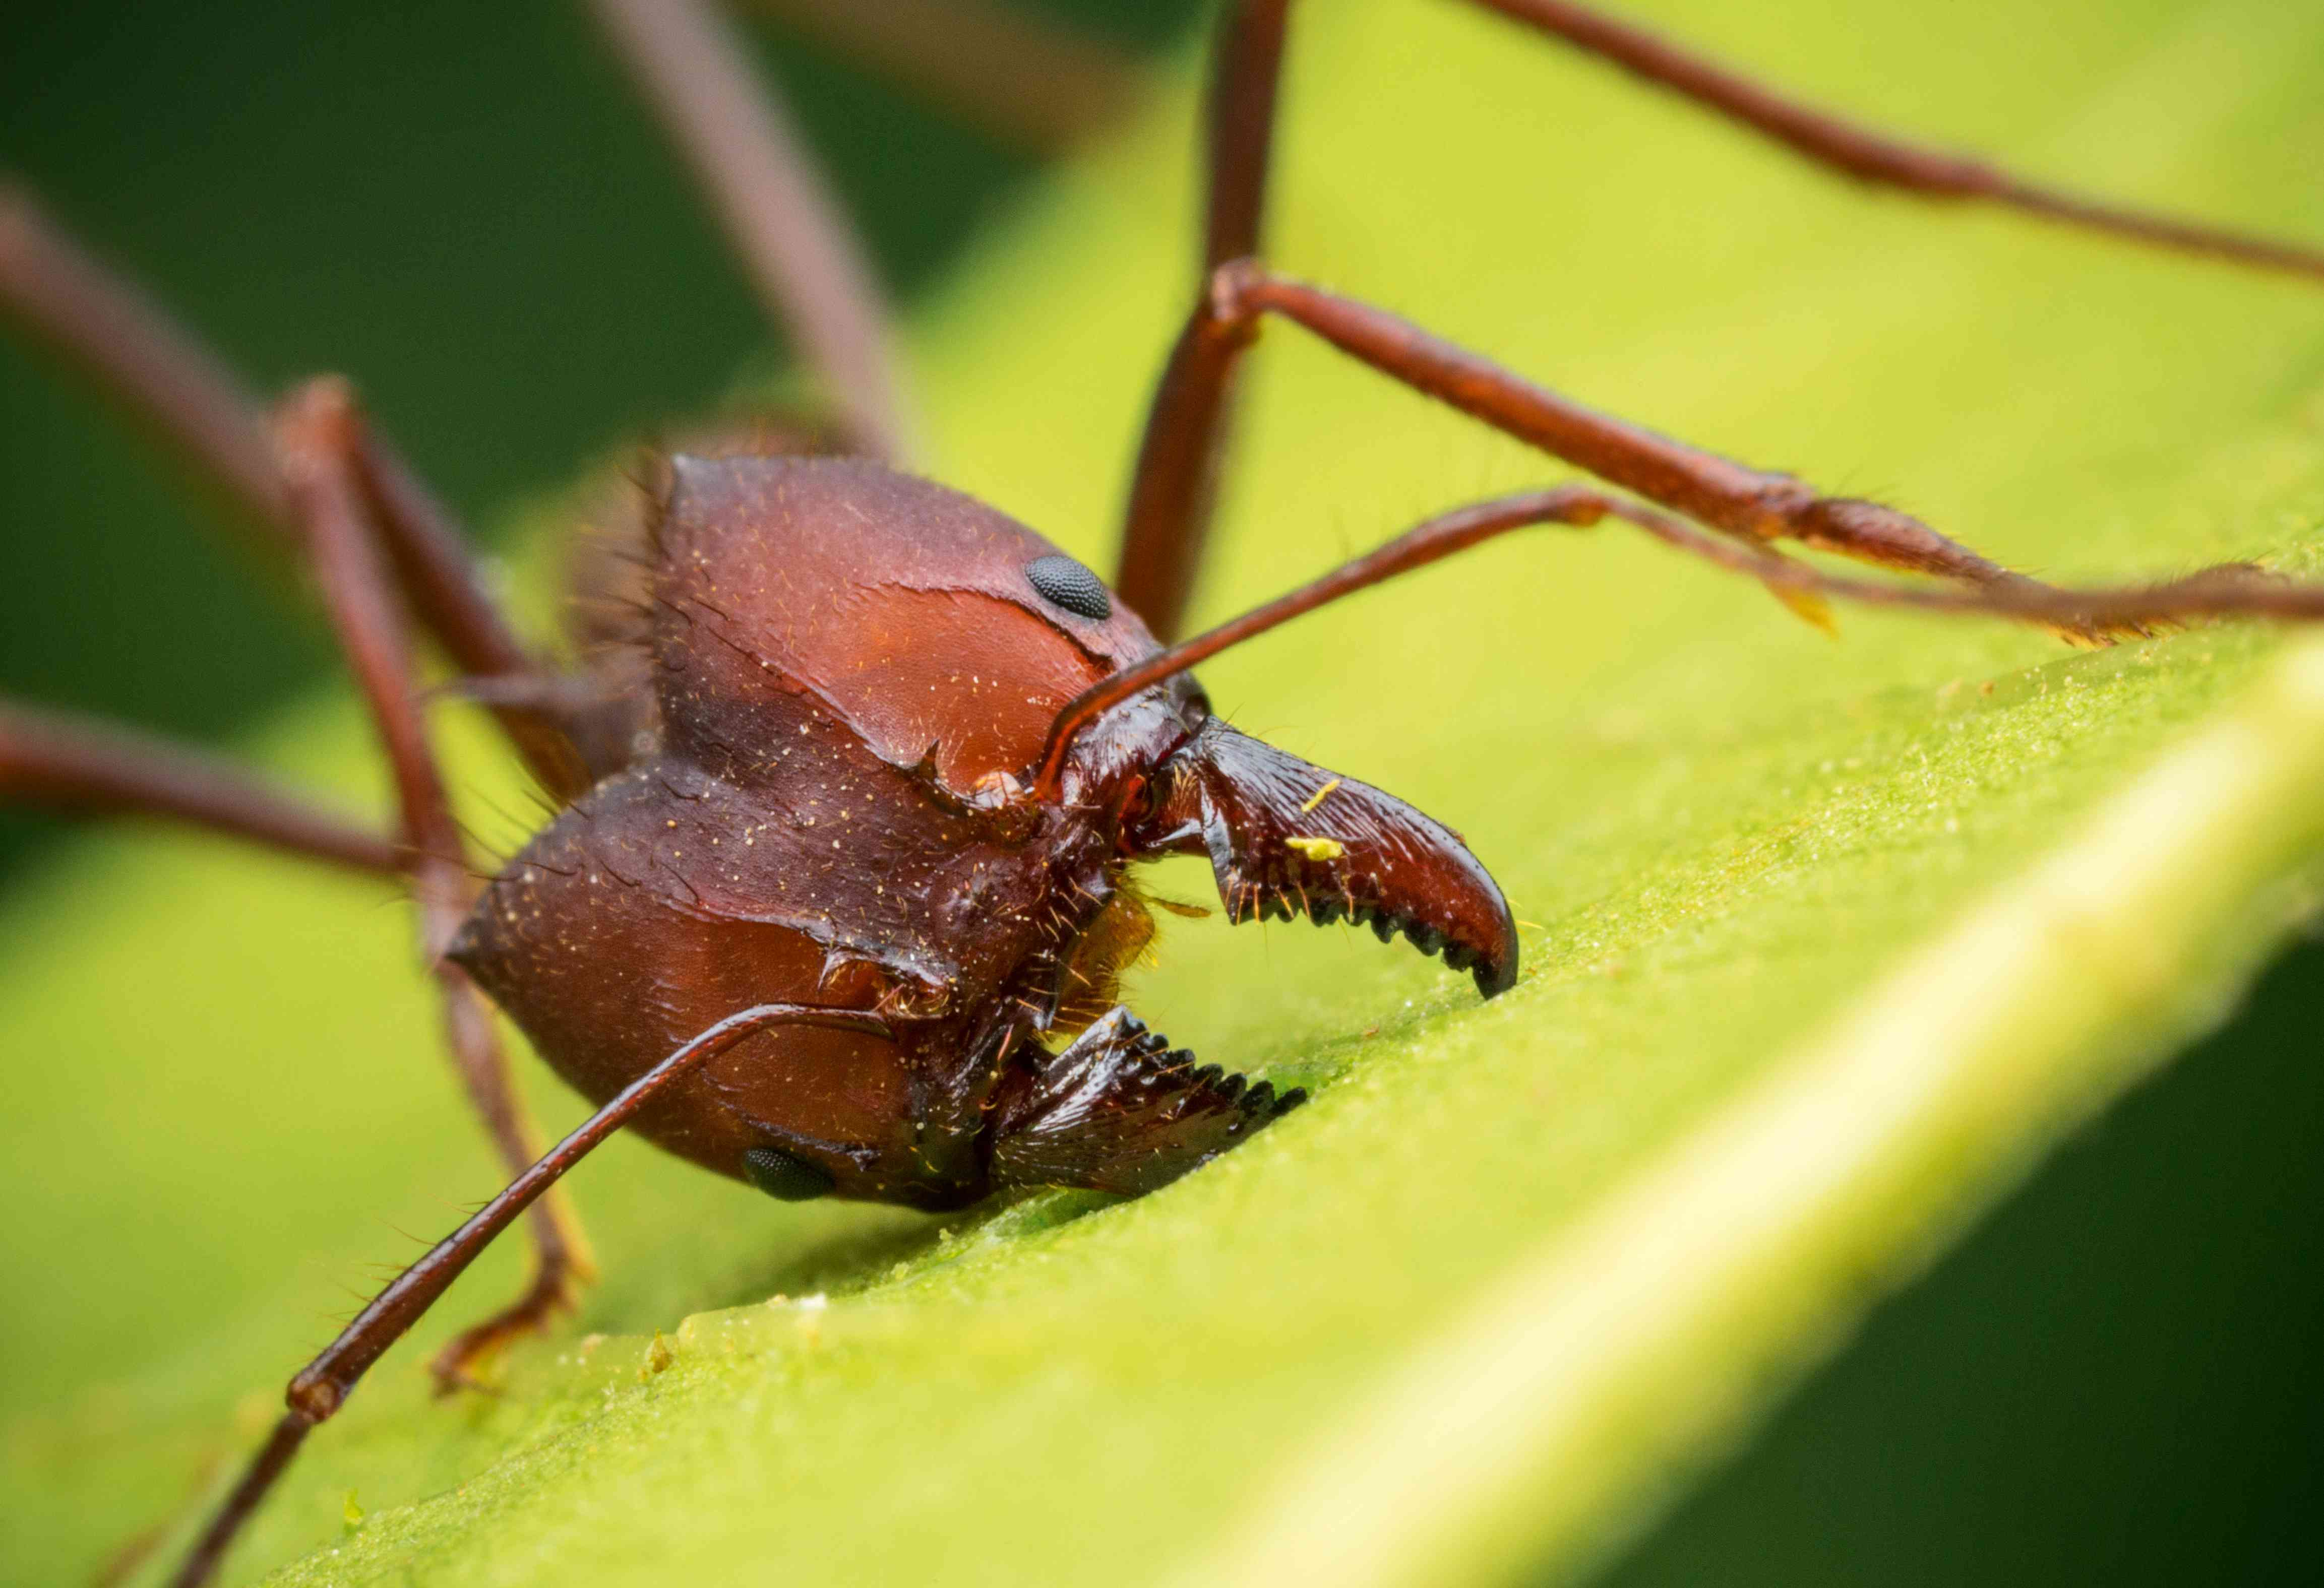 up close with an ant